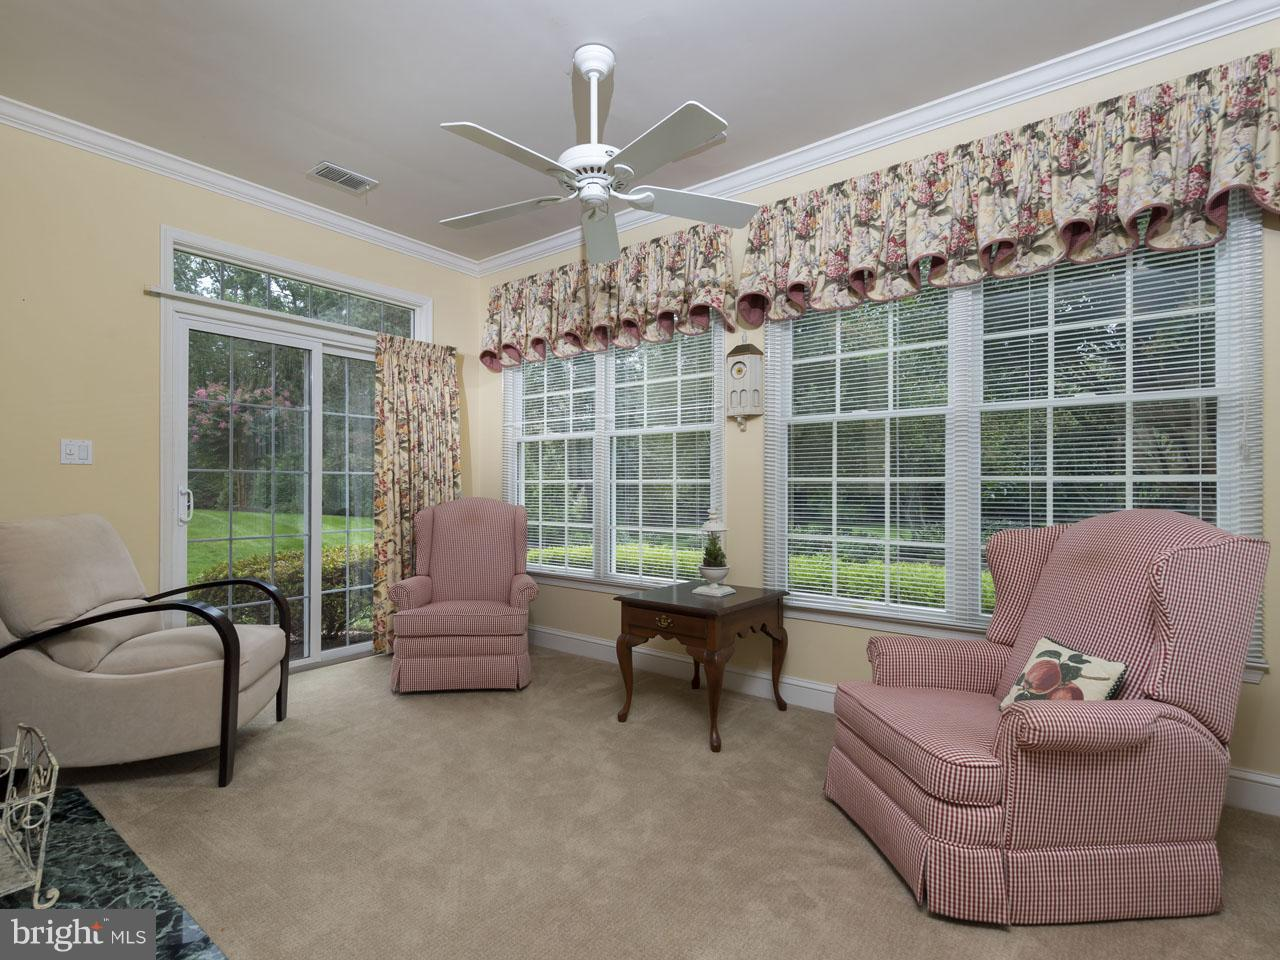 1005040466-300638084139-2021-07-22-06-45-07        Gainesville Delaware Real Estate For Sale   MLS# 1005040466  - Best of Northern Virginia